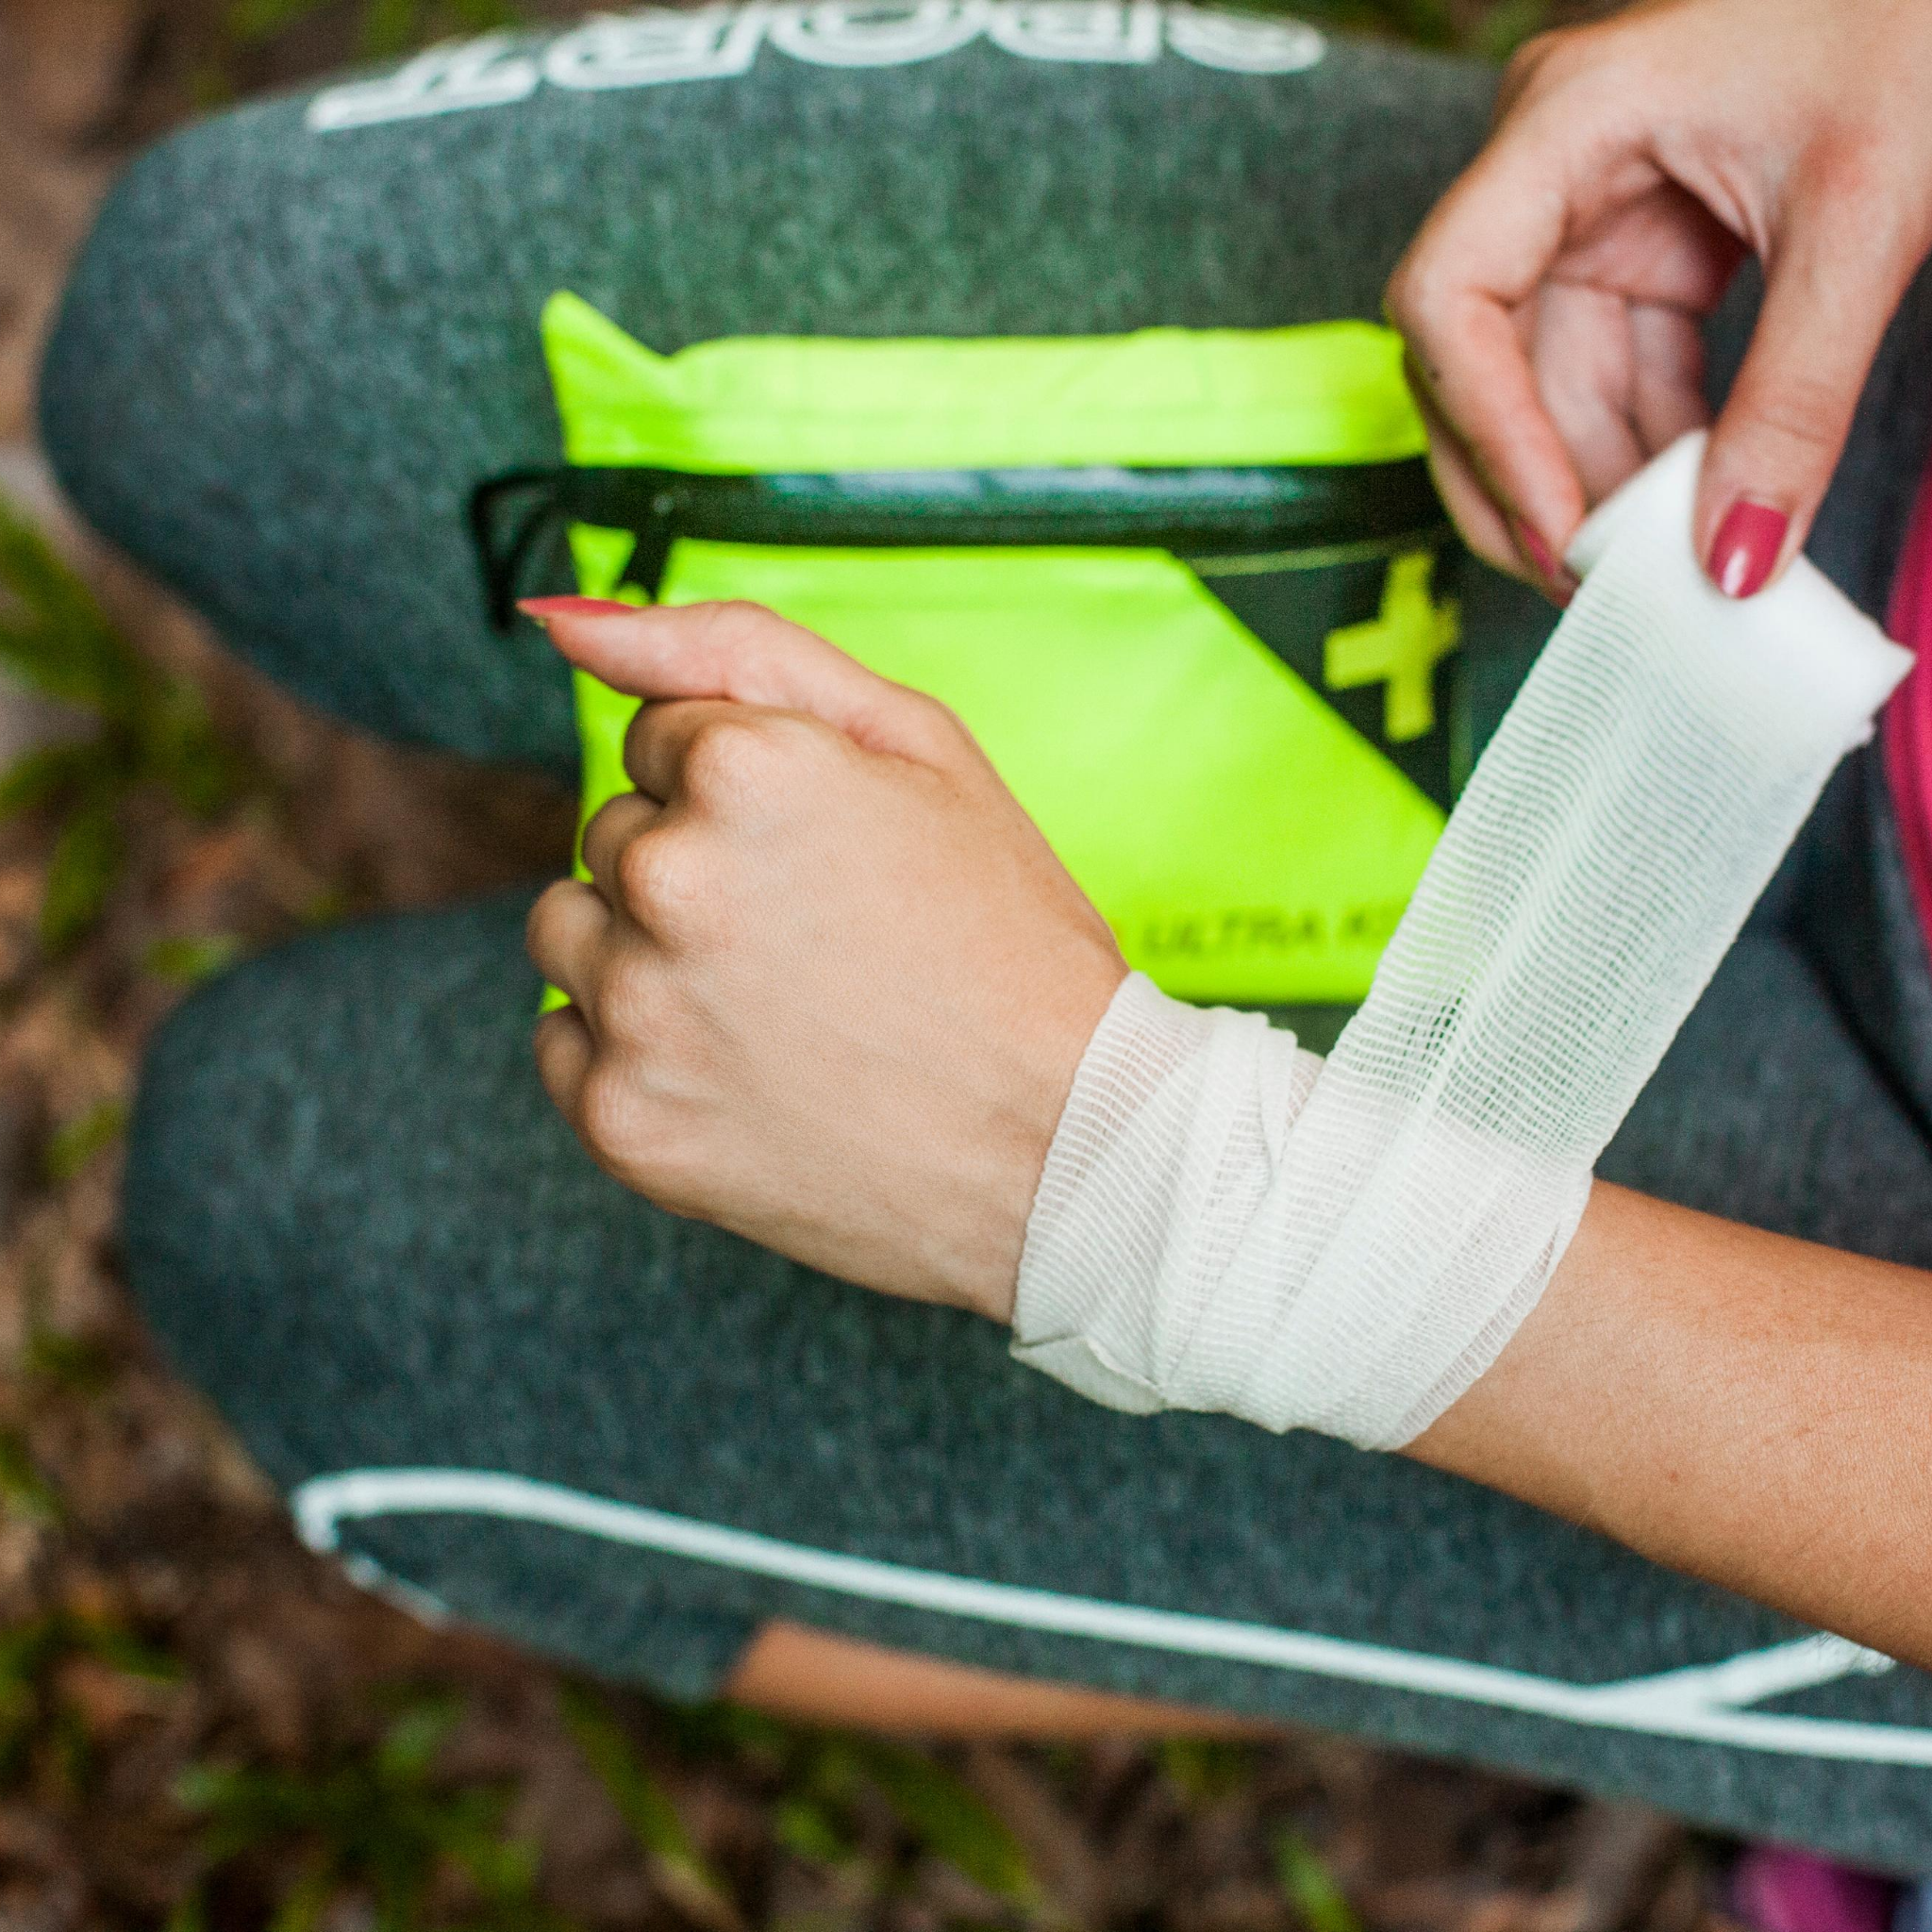 Injured women wrapping wrist with a compression bandage from the TrailSurvivor Ultra Kit